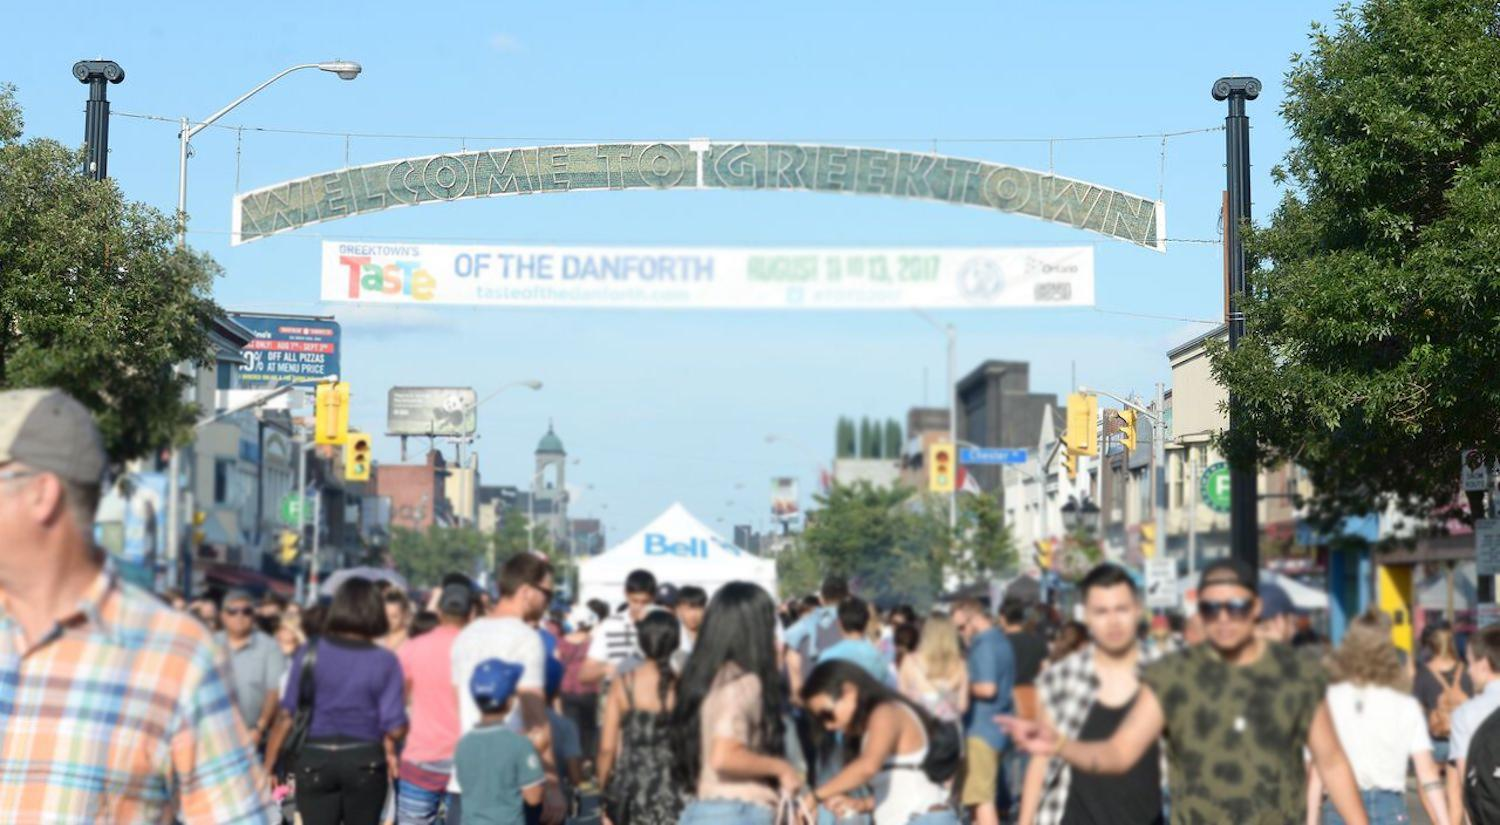 Taste-of-the-Danforth-2017-Yvano_-122_preview